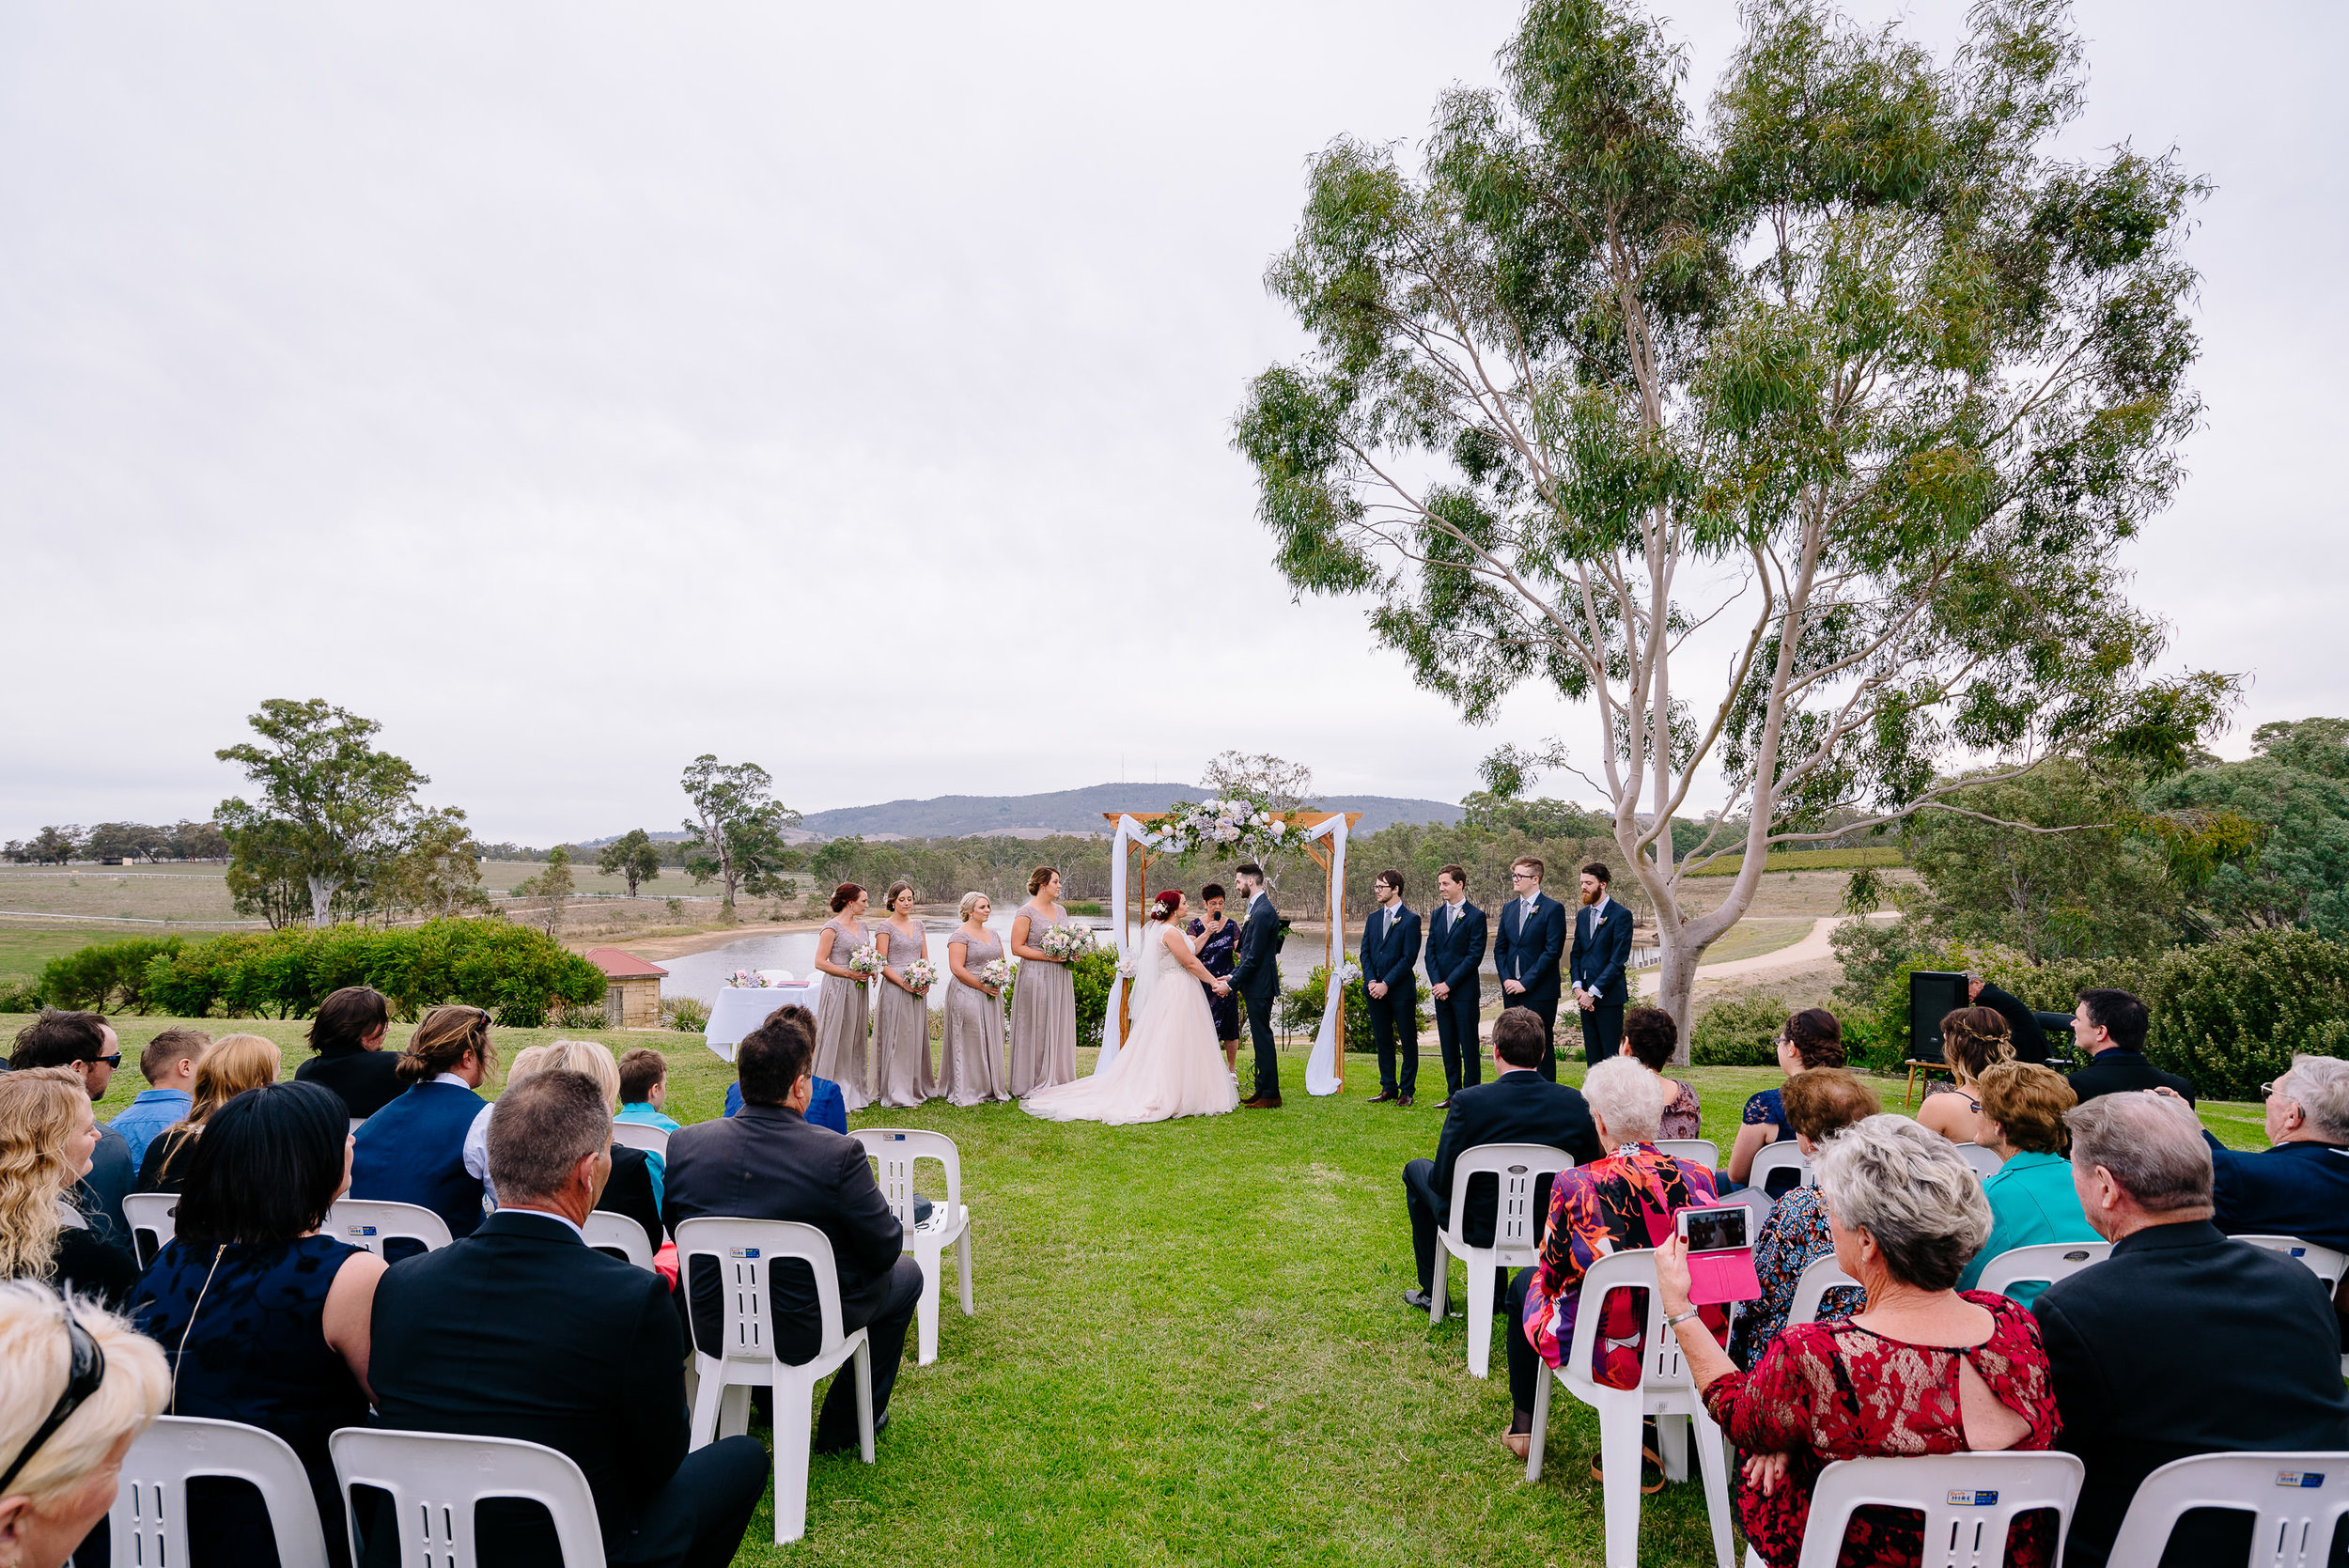 Sutton Grange Winery Outdoor Wedding Ceremony